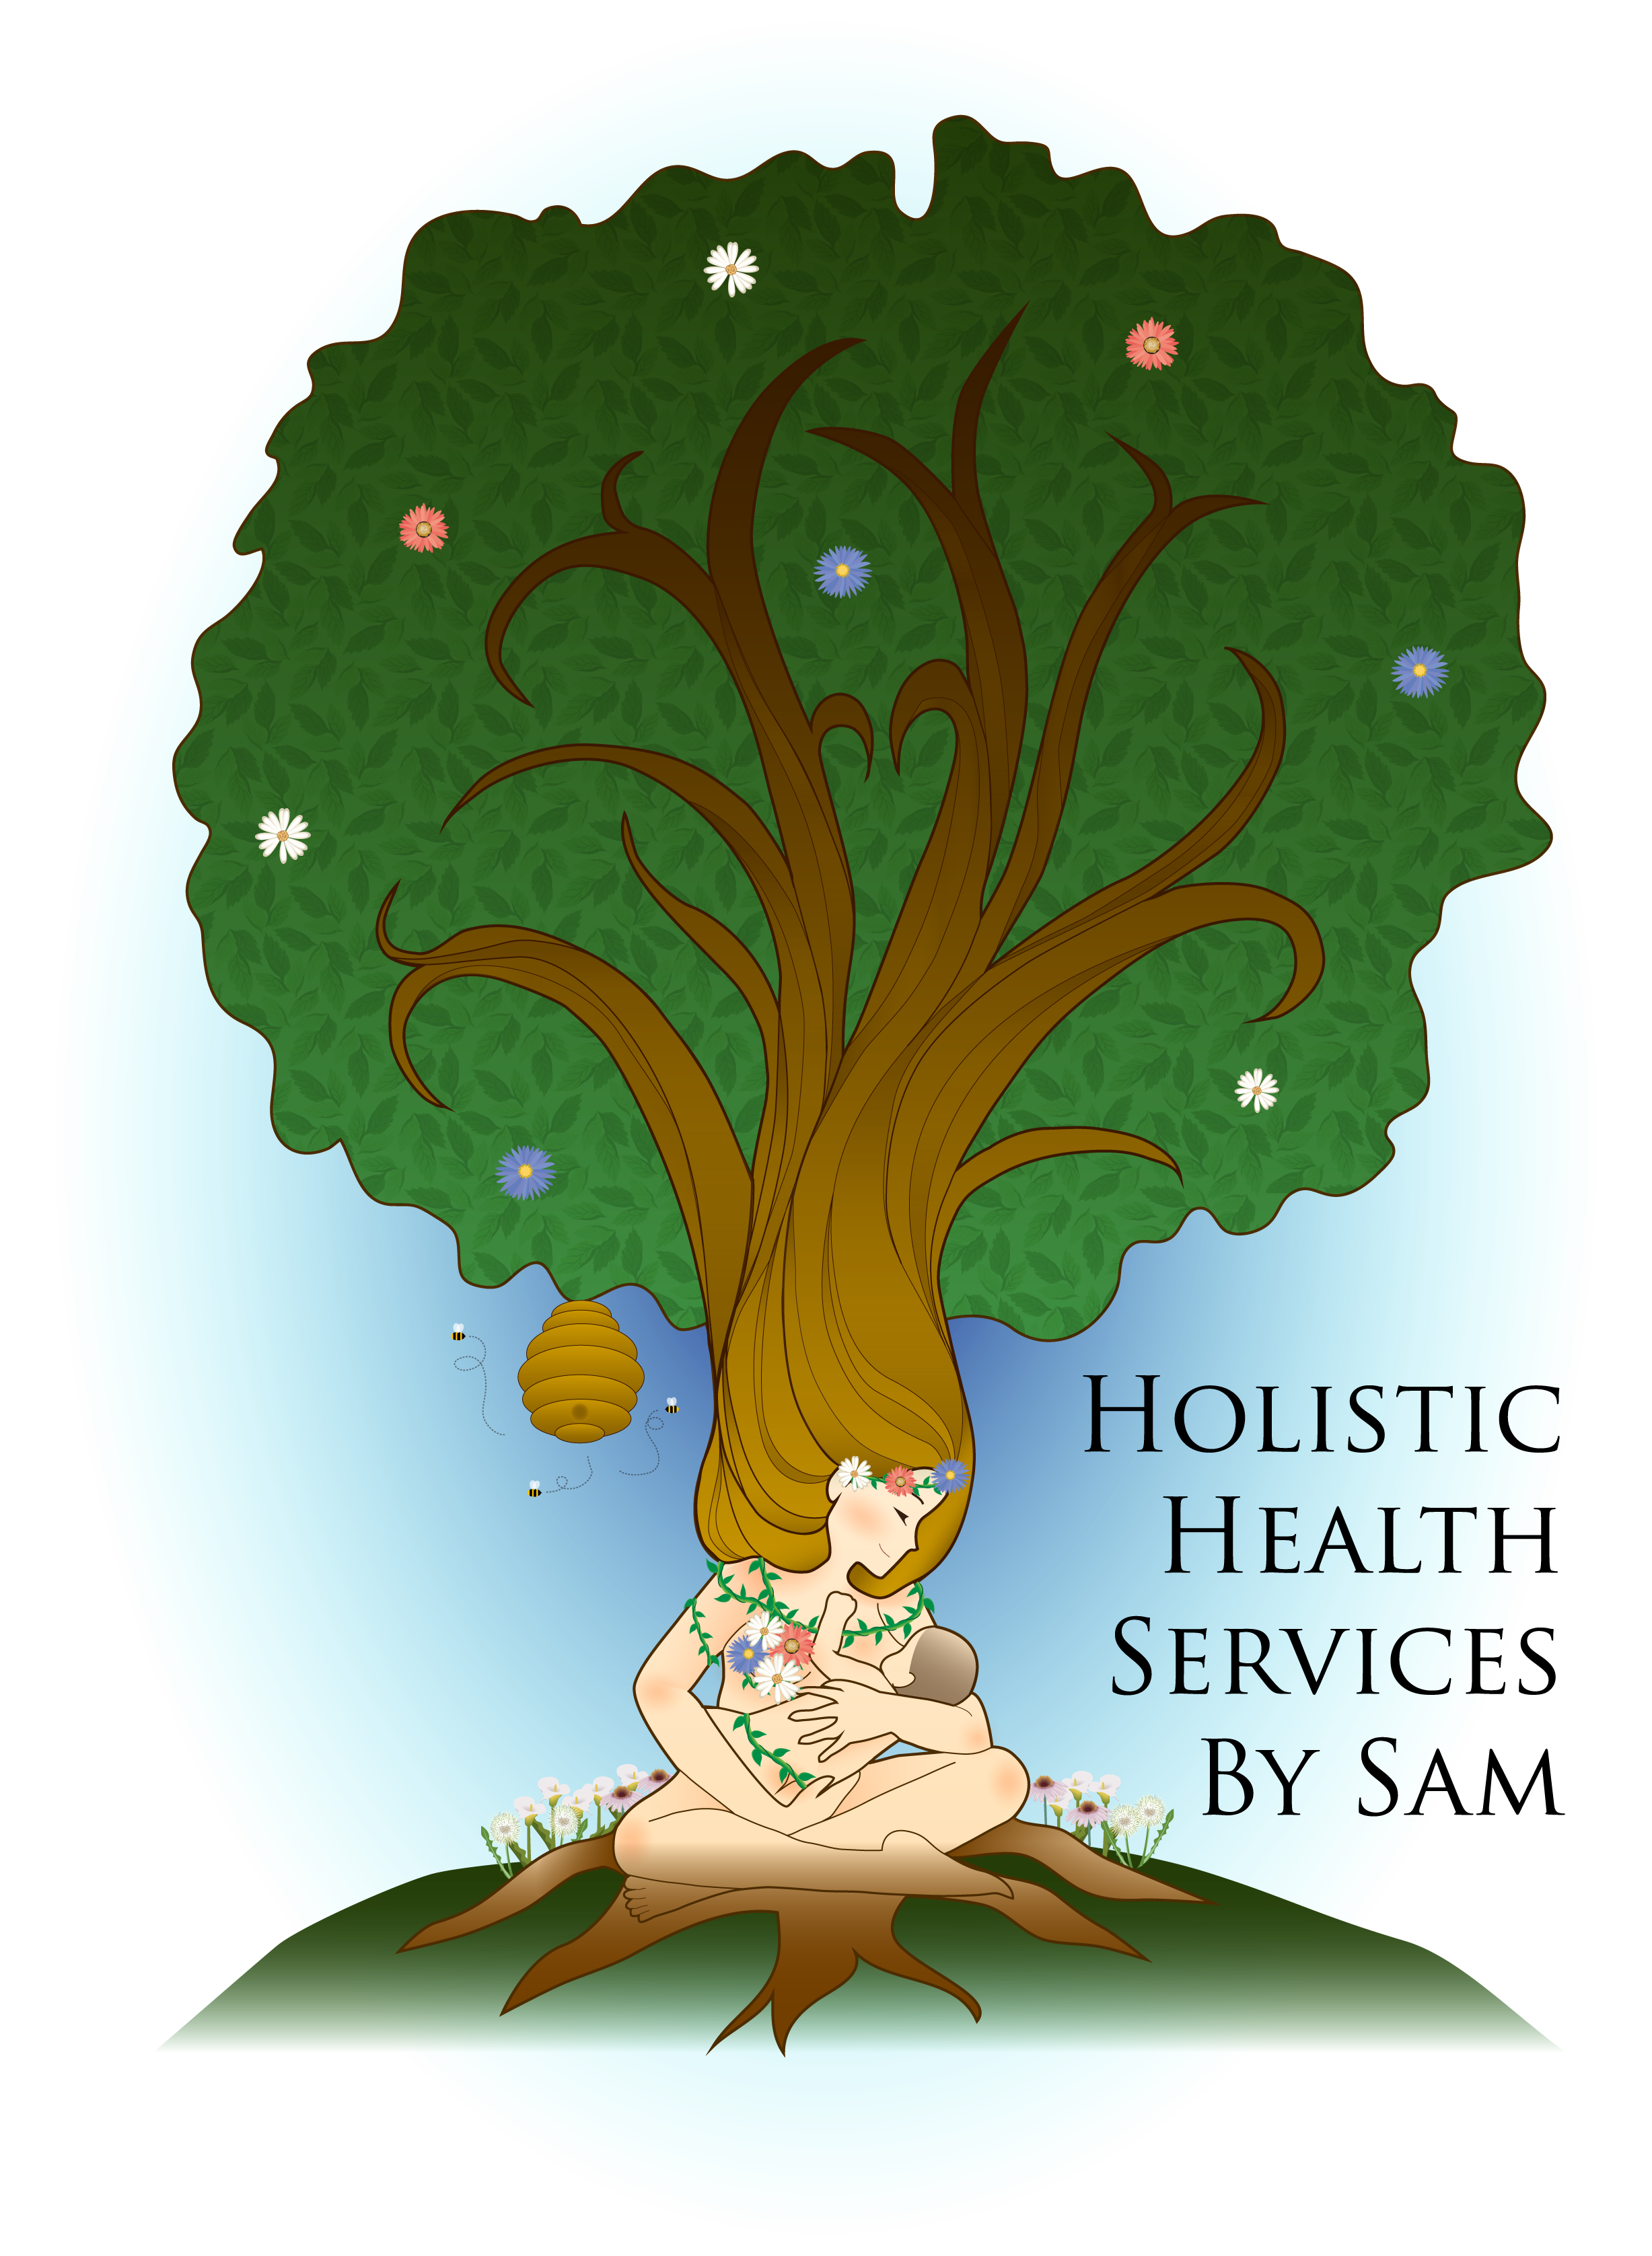 Holistic Health Services by Sam